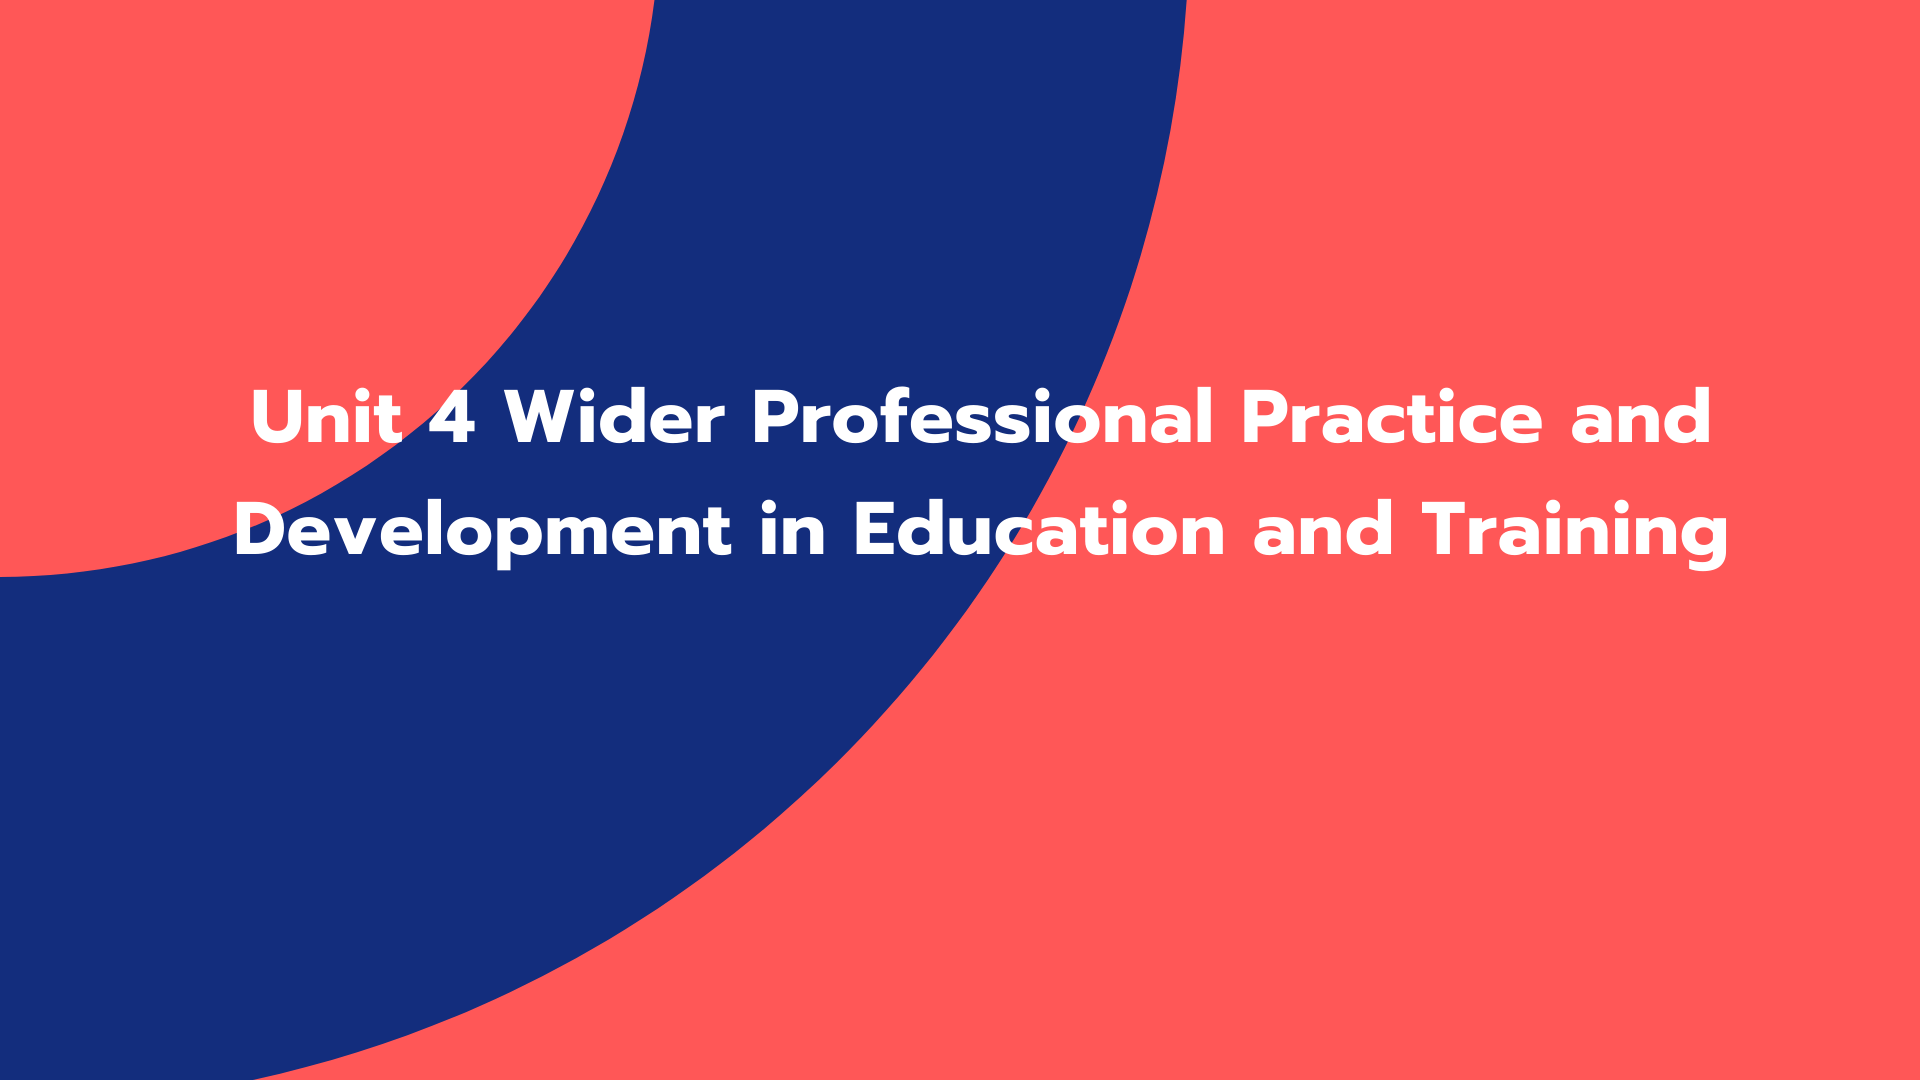 Unit 4 Wider Professional Practice and Development in Education and Training